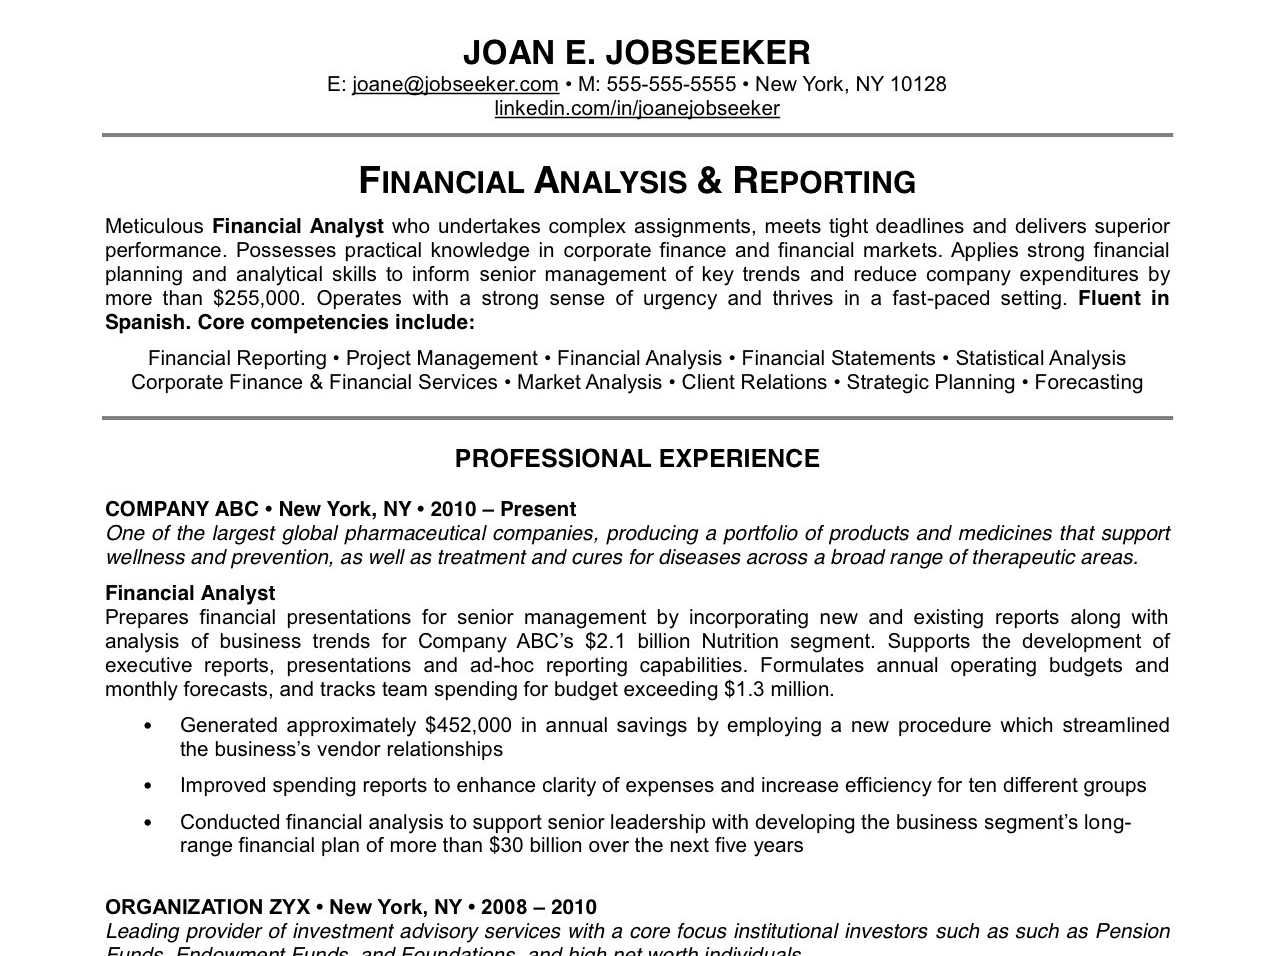 good resume formatting - Resume Formating